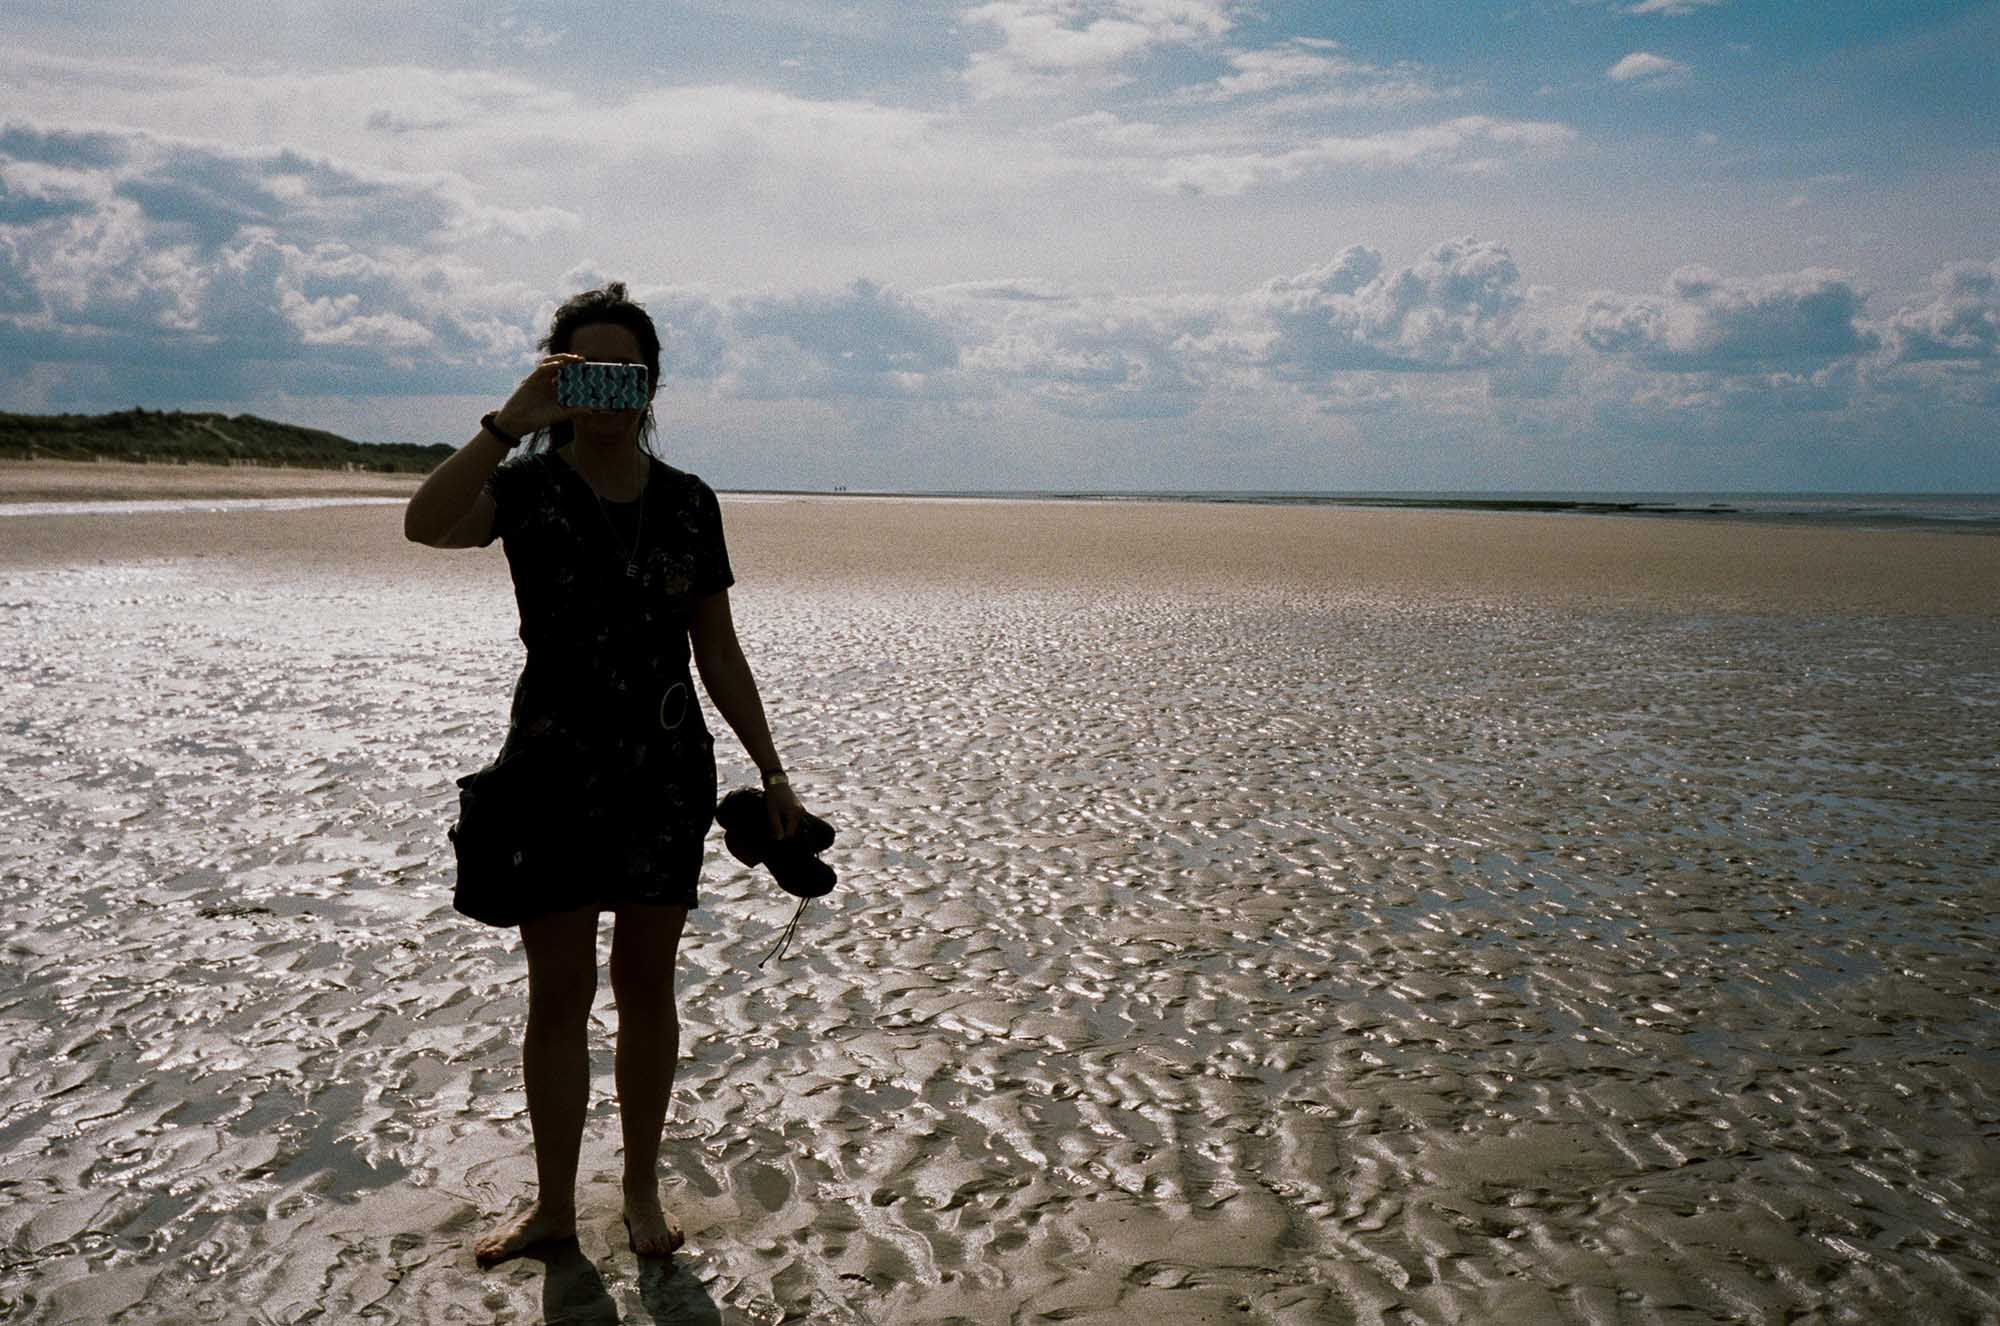 analogue stories . June on film